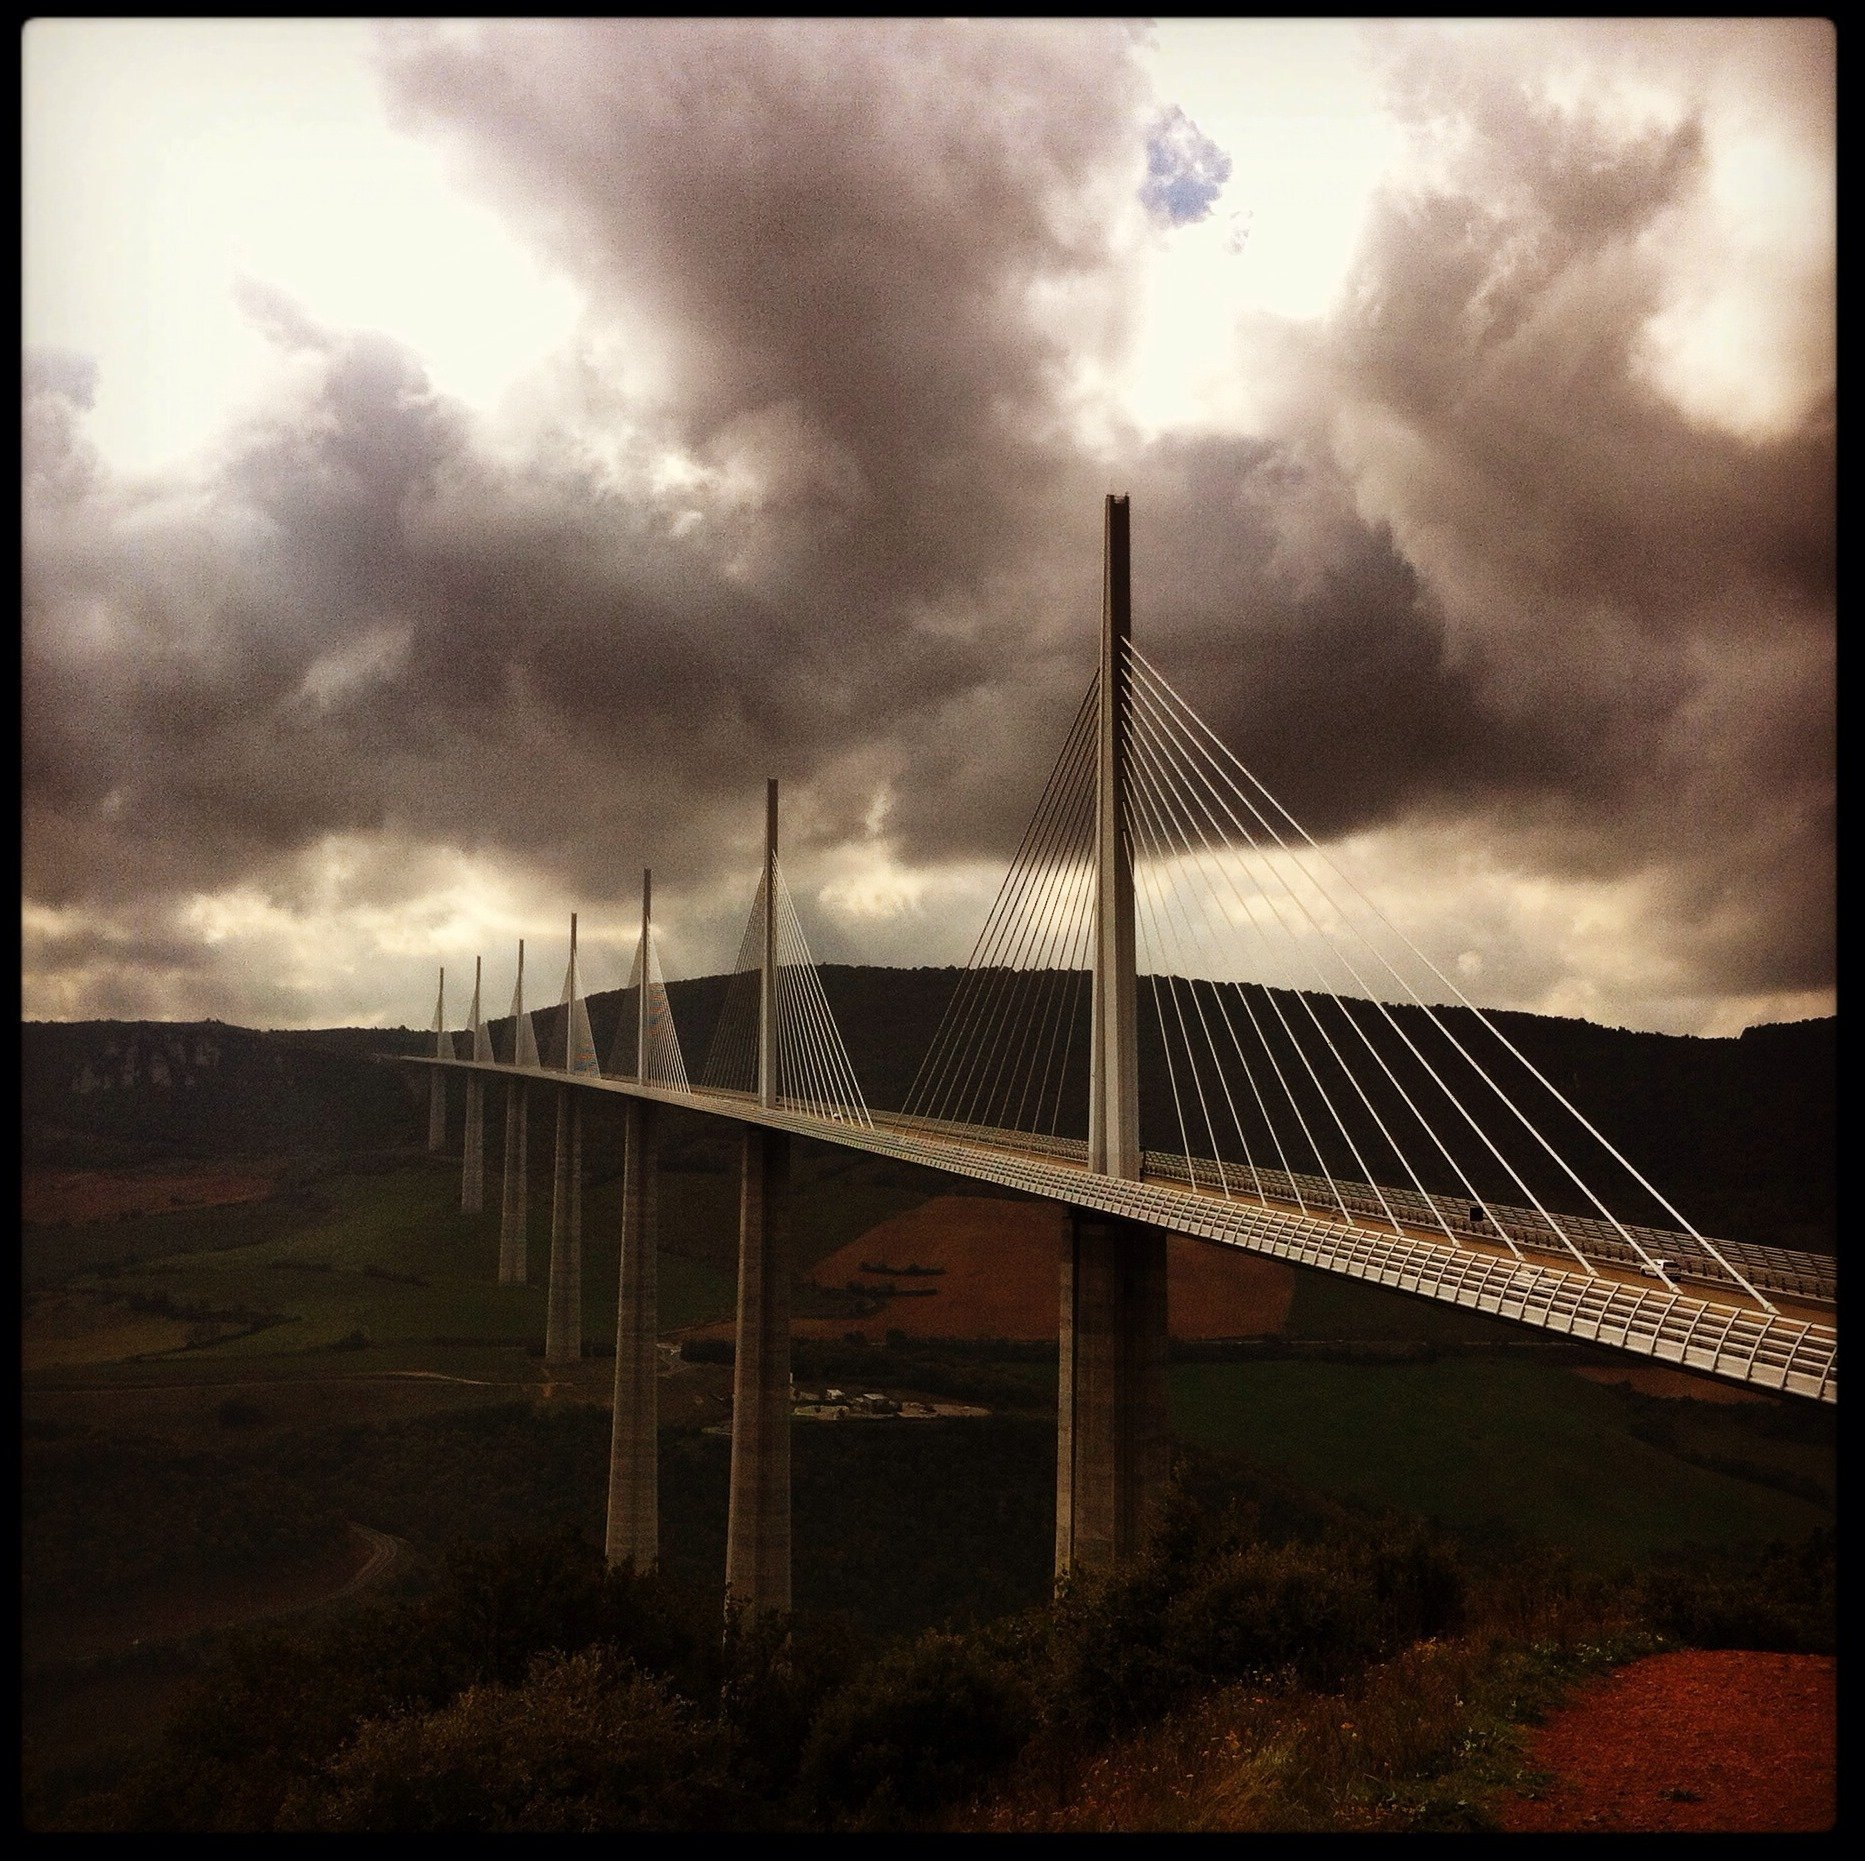 viaduc de millau viaduct aveyron france tallest bridge in world